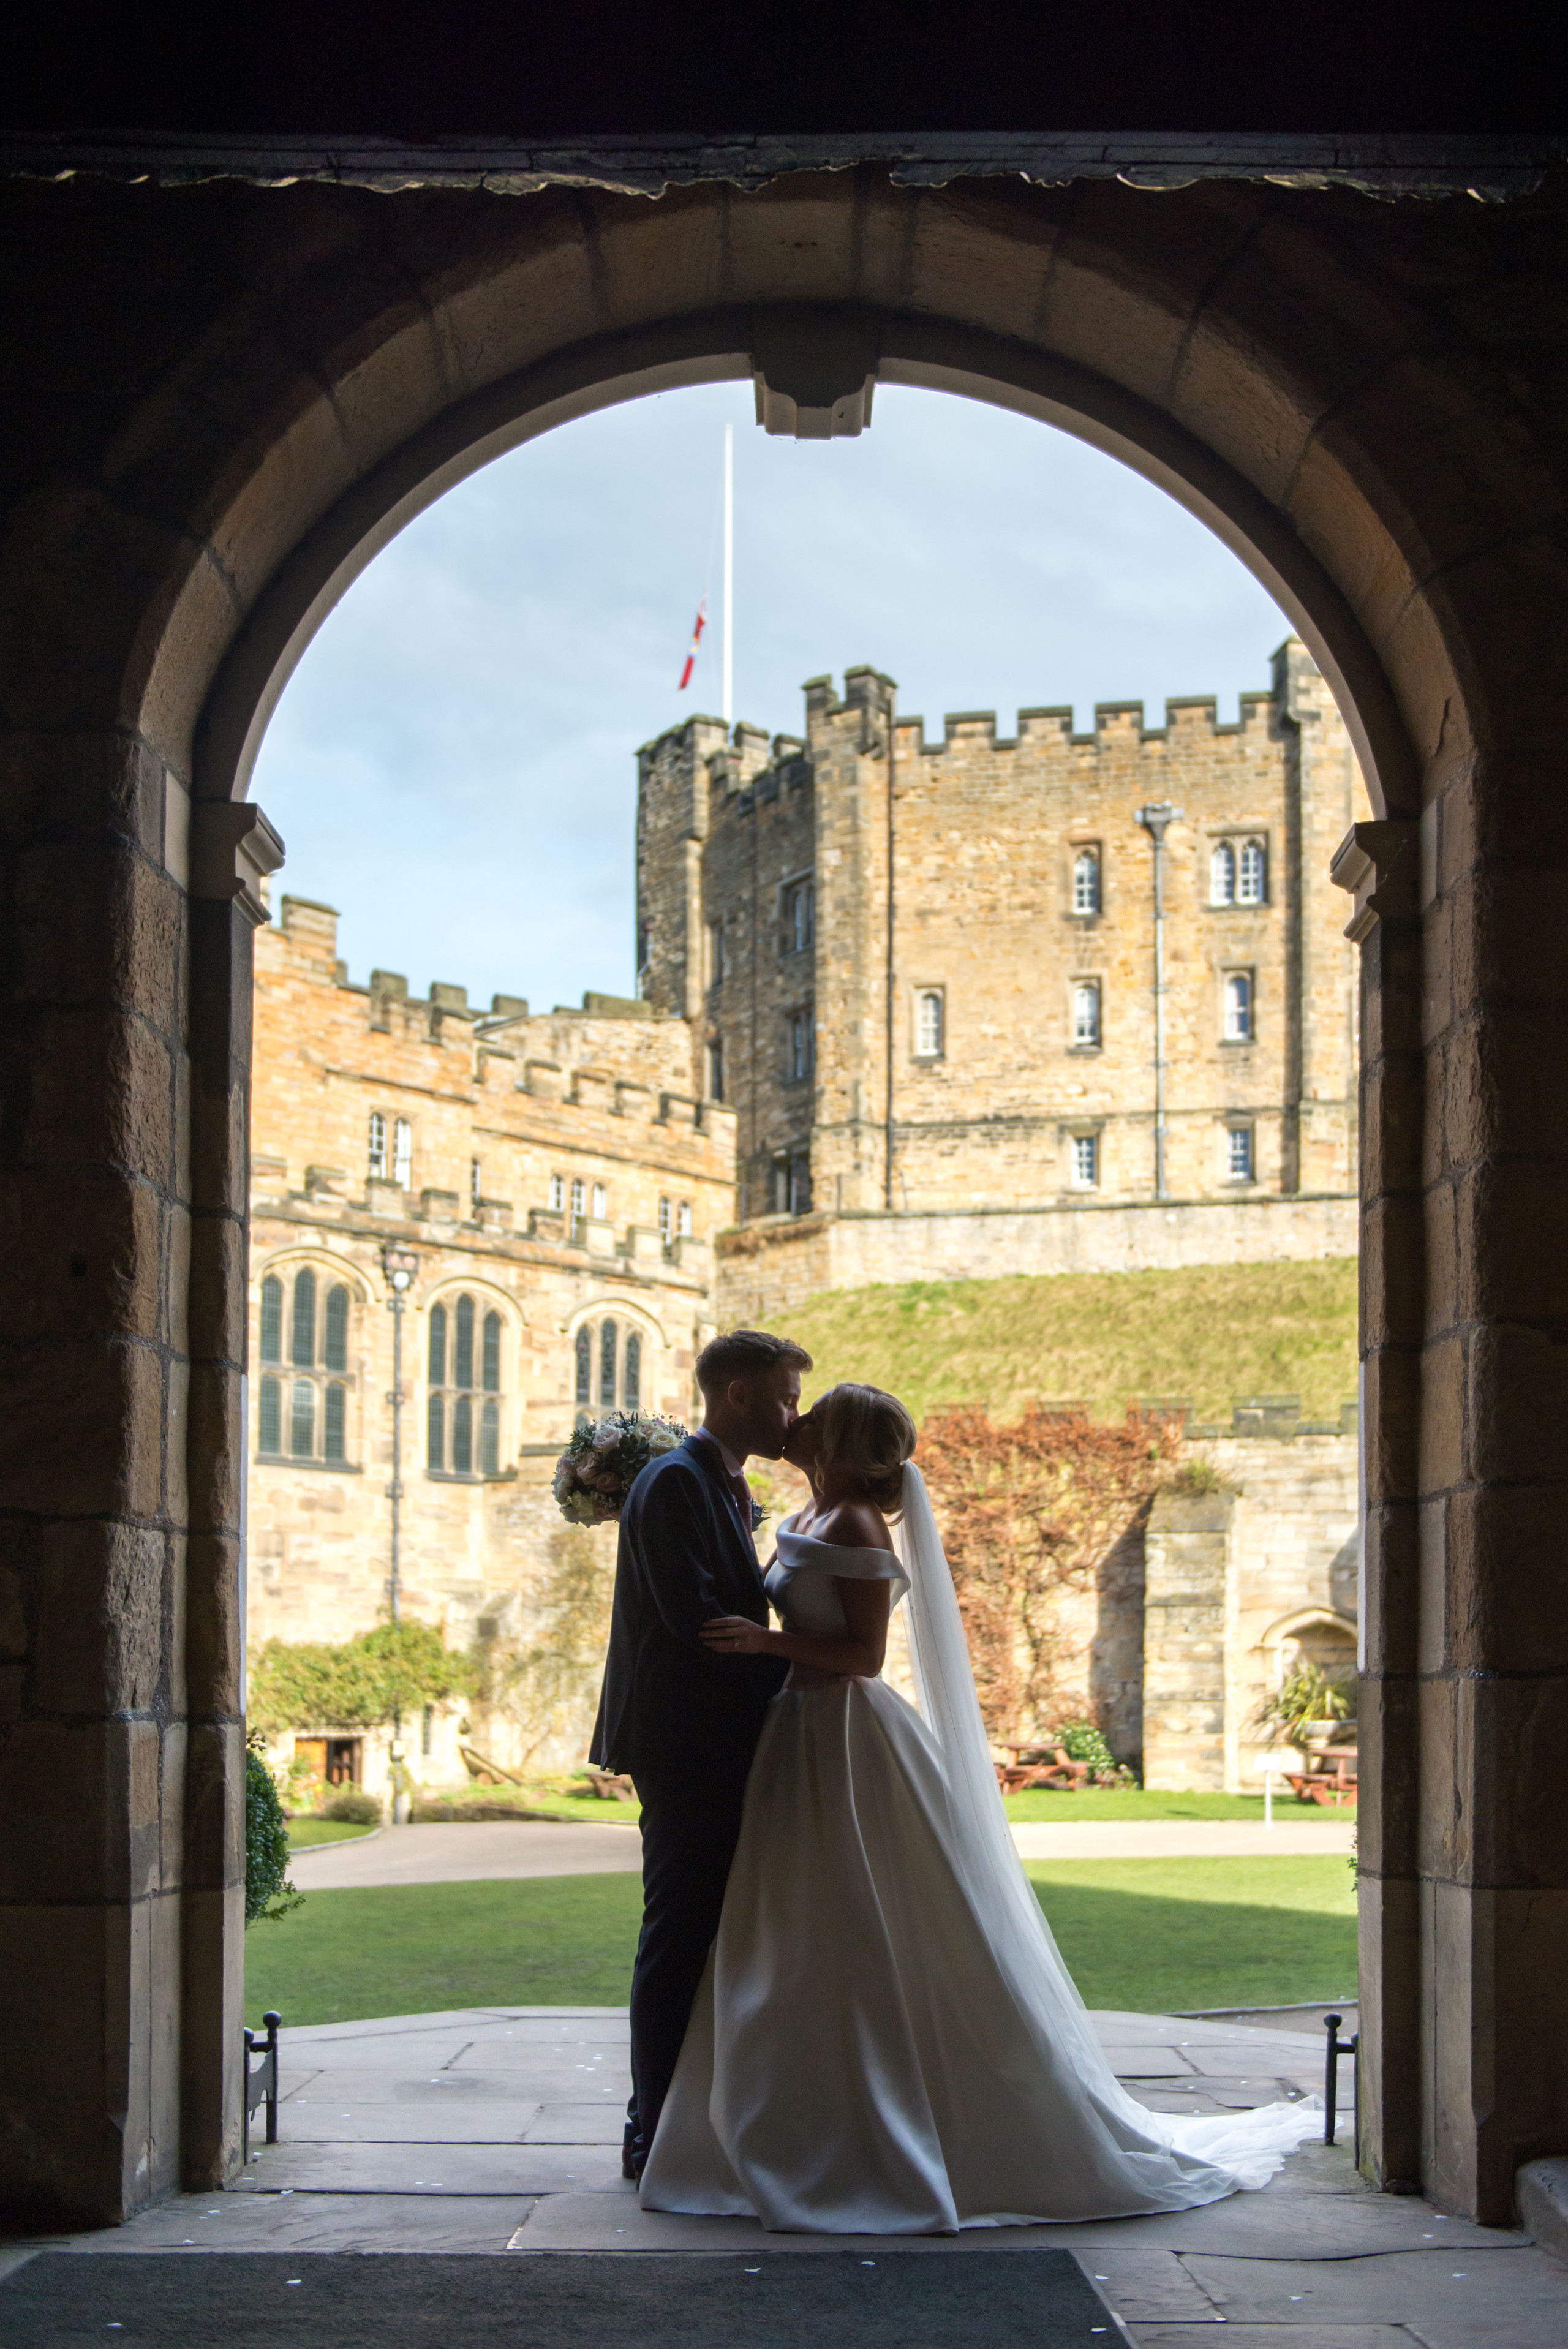 Relaxed wedding photography silhouette of bride and groom kissing in entrance archway to Bishops Hall near Inner Bailey of historic venue Durham Castle in Durham City